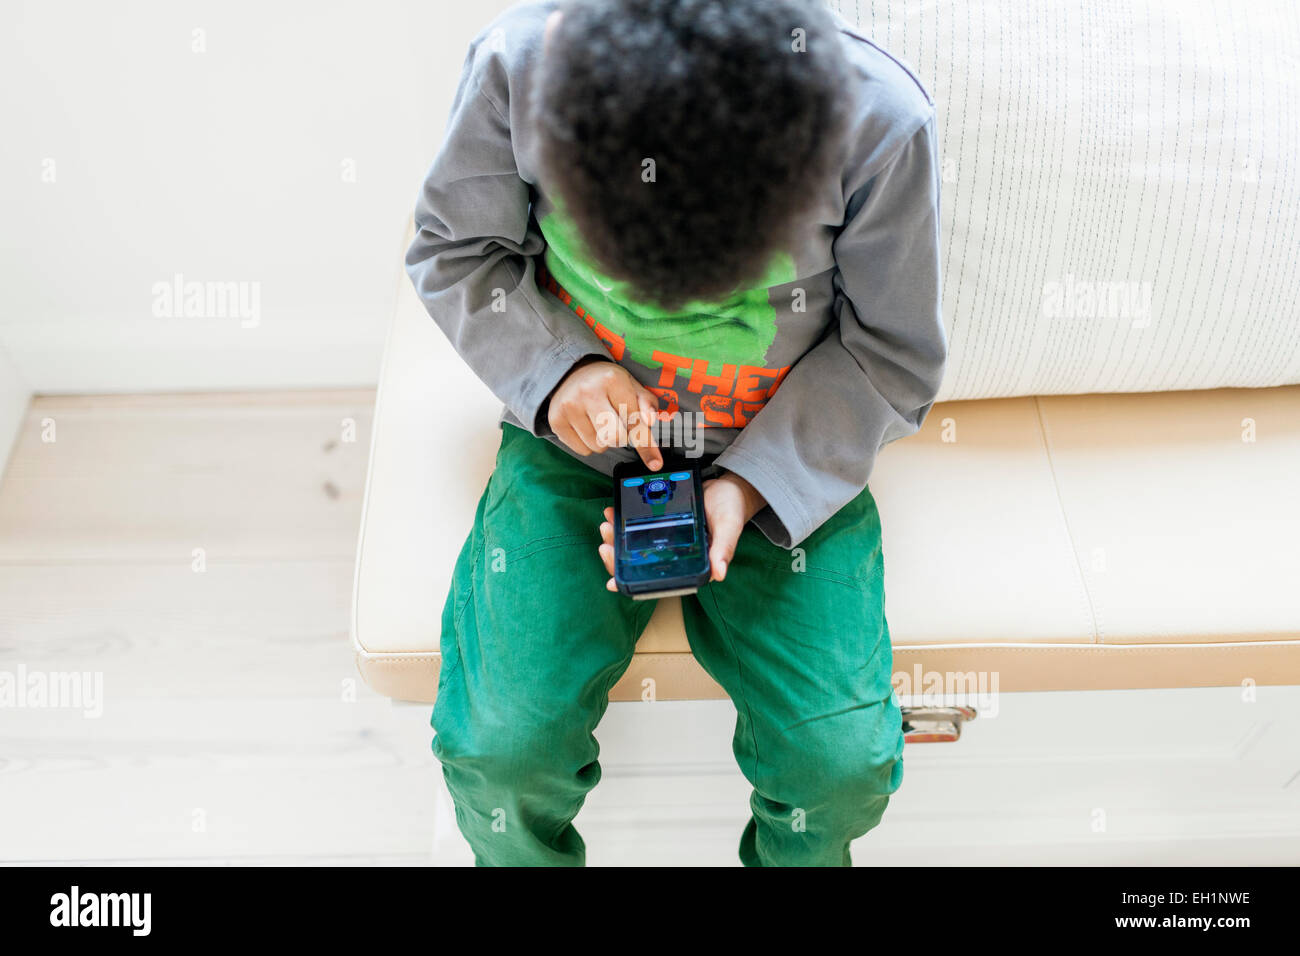 High angle view of boy playing games on smart phone at home - Stock Image